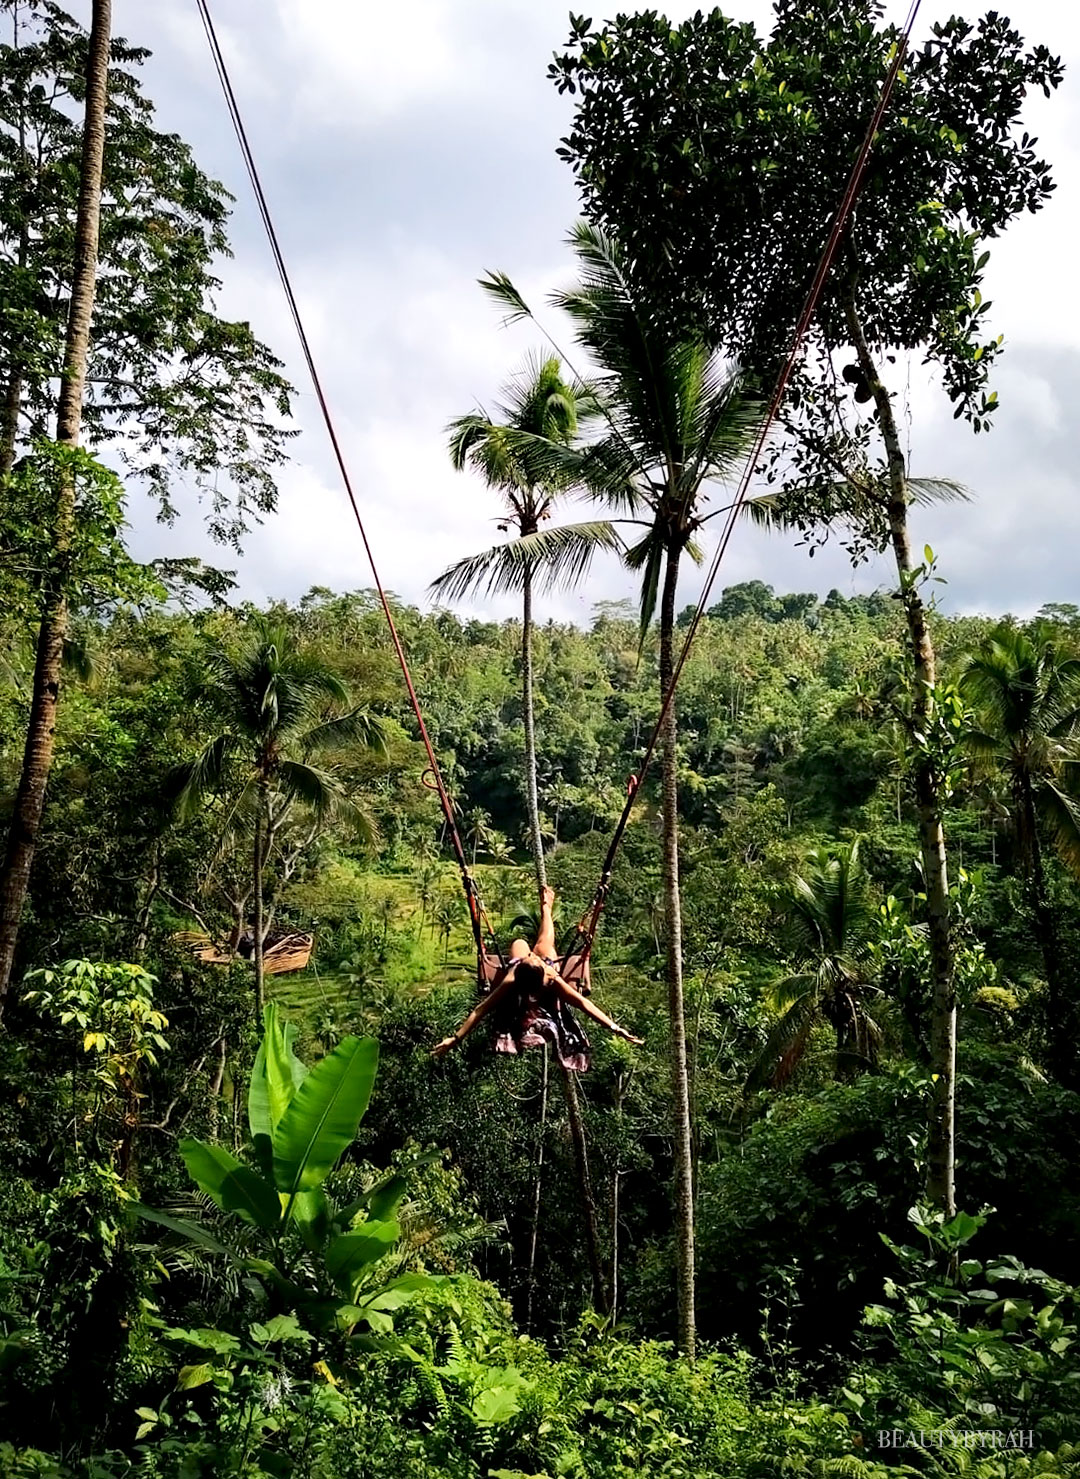 kumulilir coffee plantation jungle swing bali